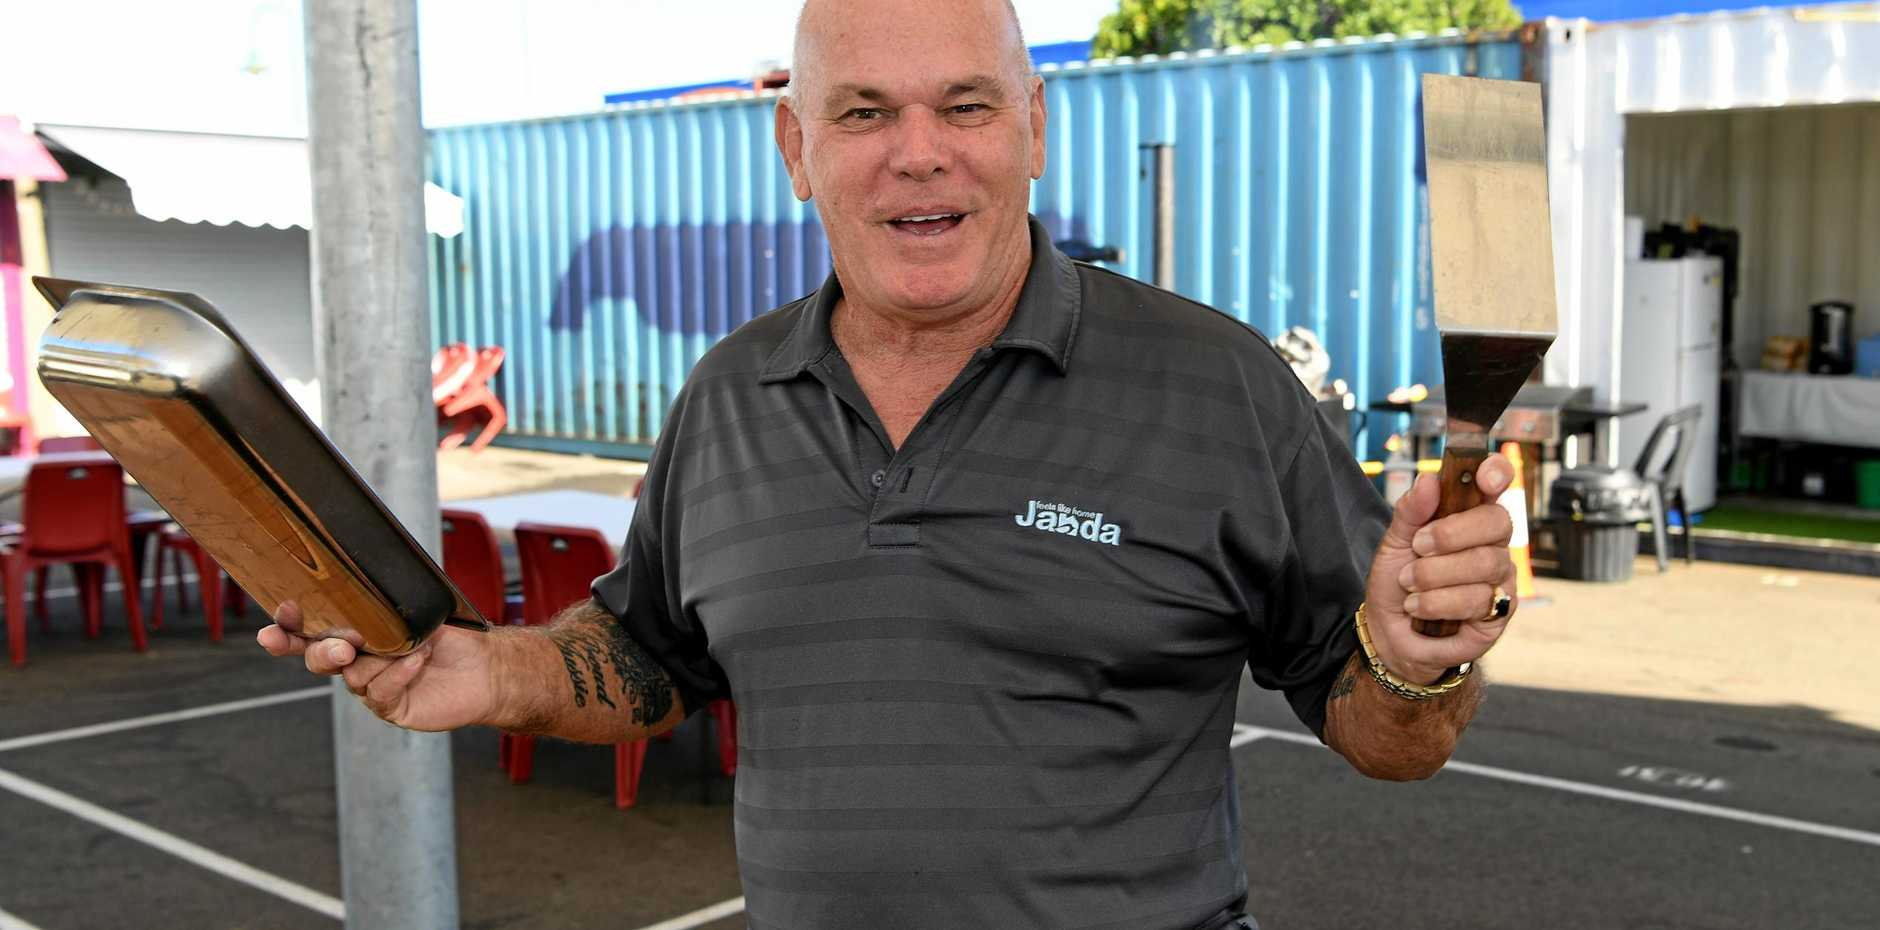 INDUSTRY INSIGHT: Cliff Crampton is excited about Lana's Farmers Markets hosting a Paddock to Plate Experience today.